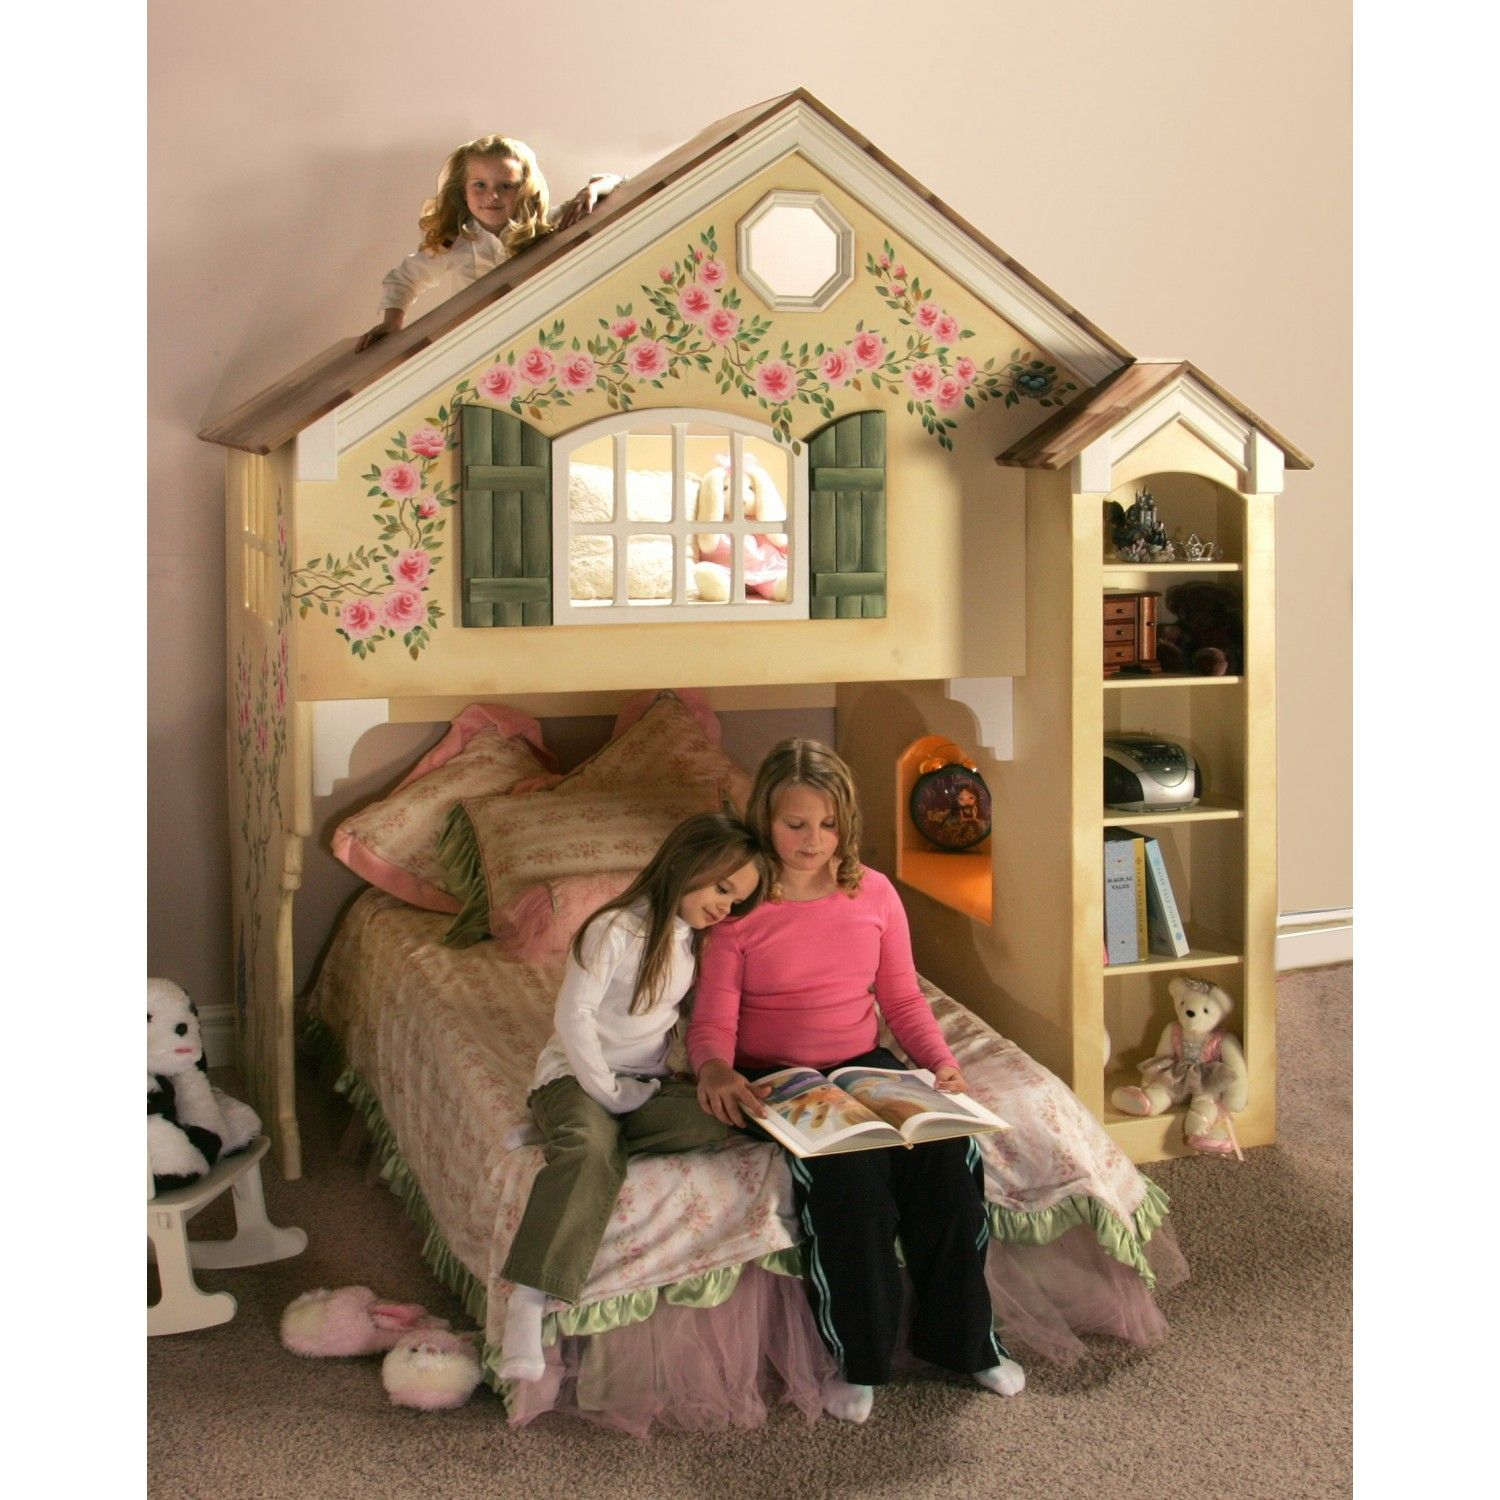 Blueprints For The Dollhouse Bunk Bed Twin Over Full Loft Bunk Beds Bunk Bed Plans Kids Bedroom Furniture